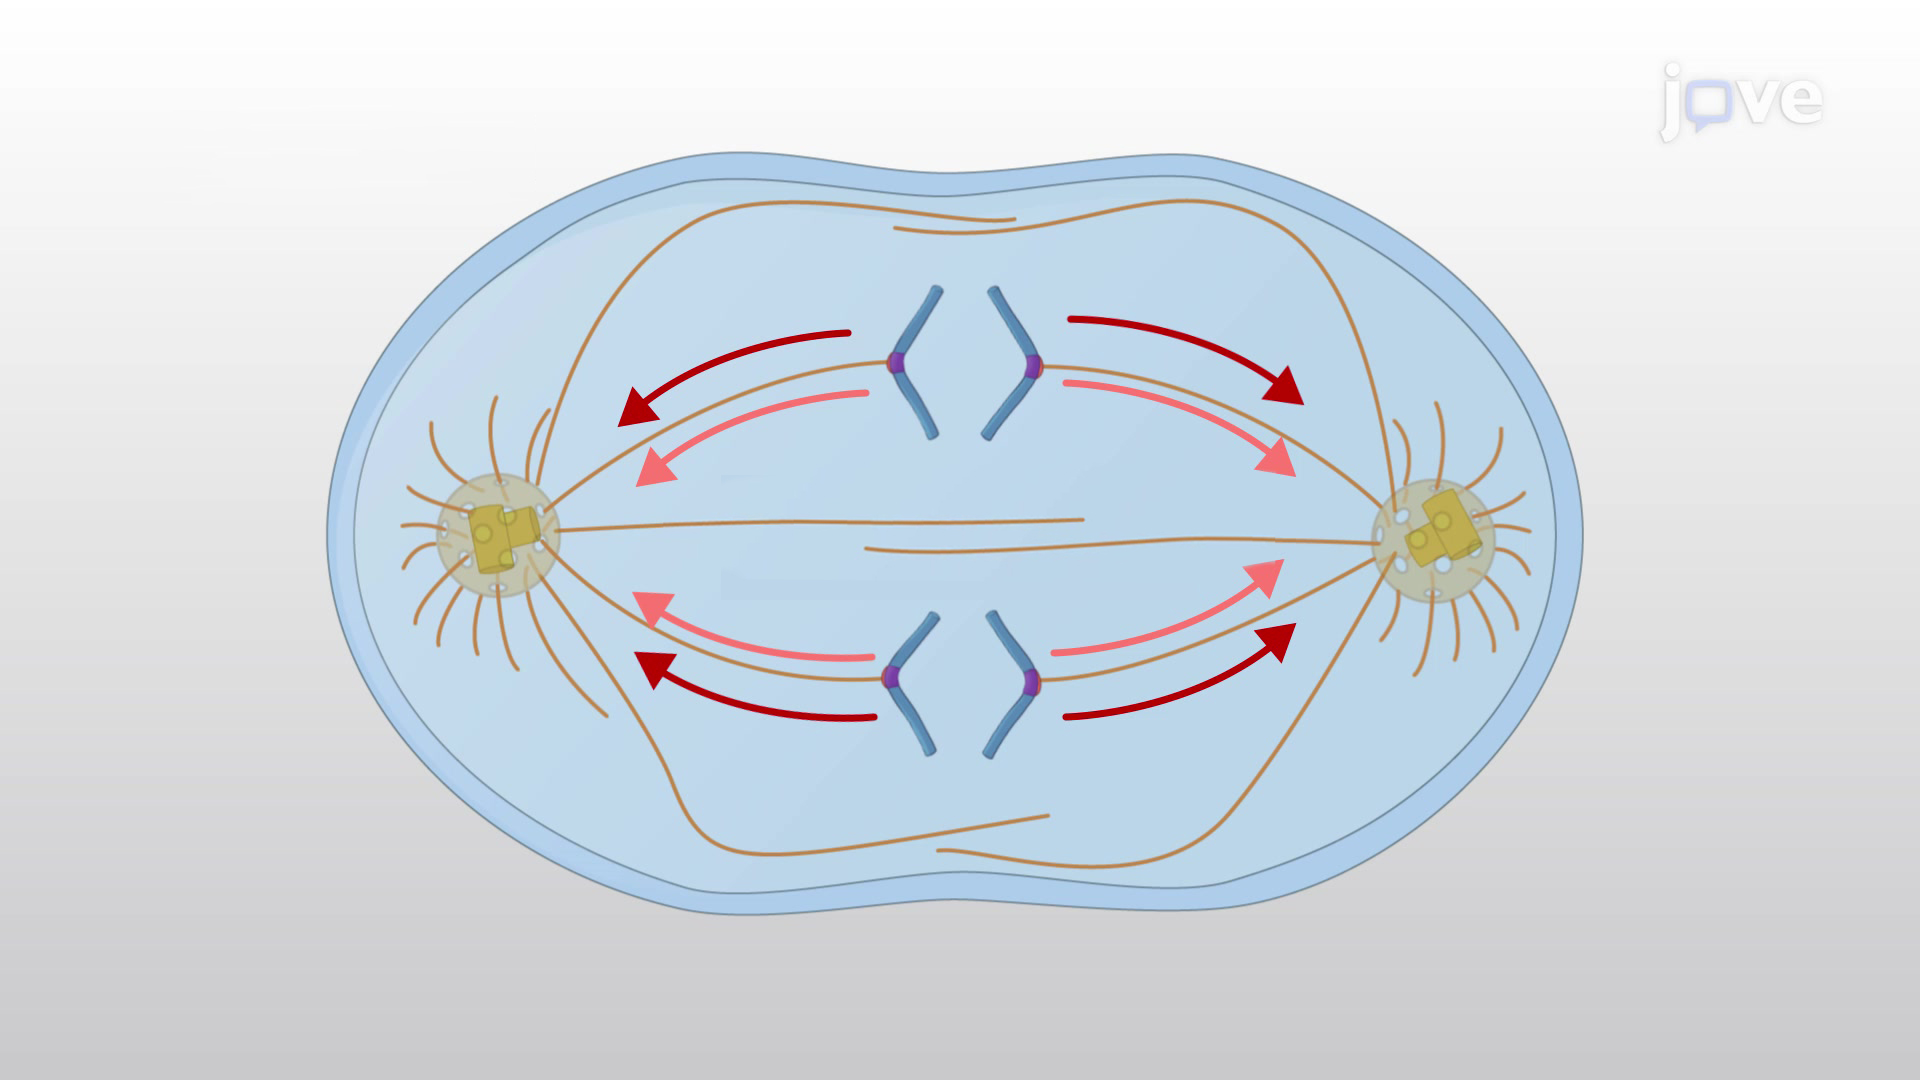 Anaphase A and B